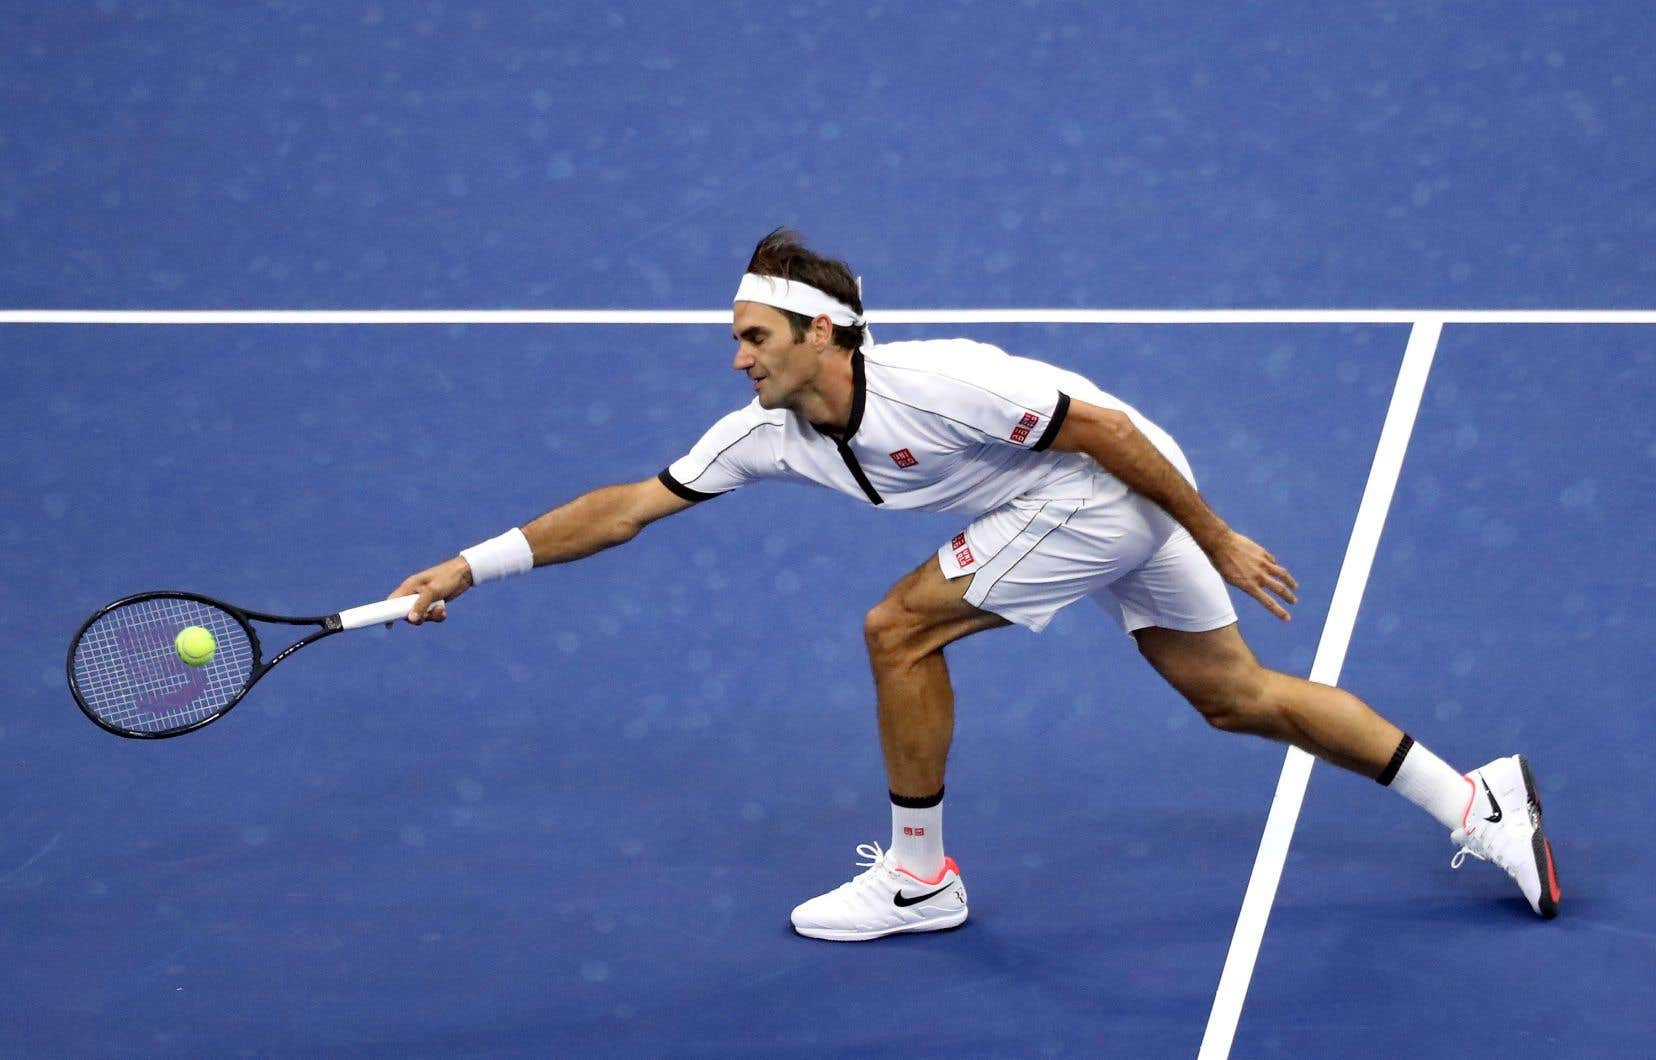 Roger Federer (en photo) a perdu lundi le premier set de son premier match de l'US Open 2019, avant de dominer l'Indien Sumit Nagal (190e joueur mondial et issu des qualifications) 4-6, 6-1, 6-2, 6-4.